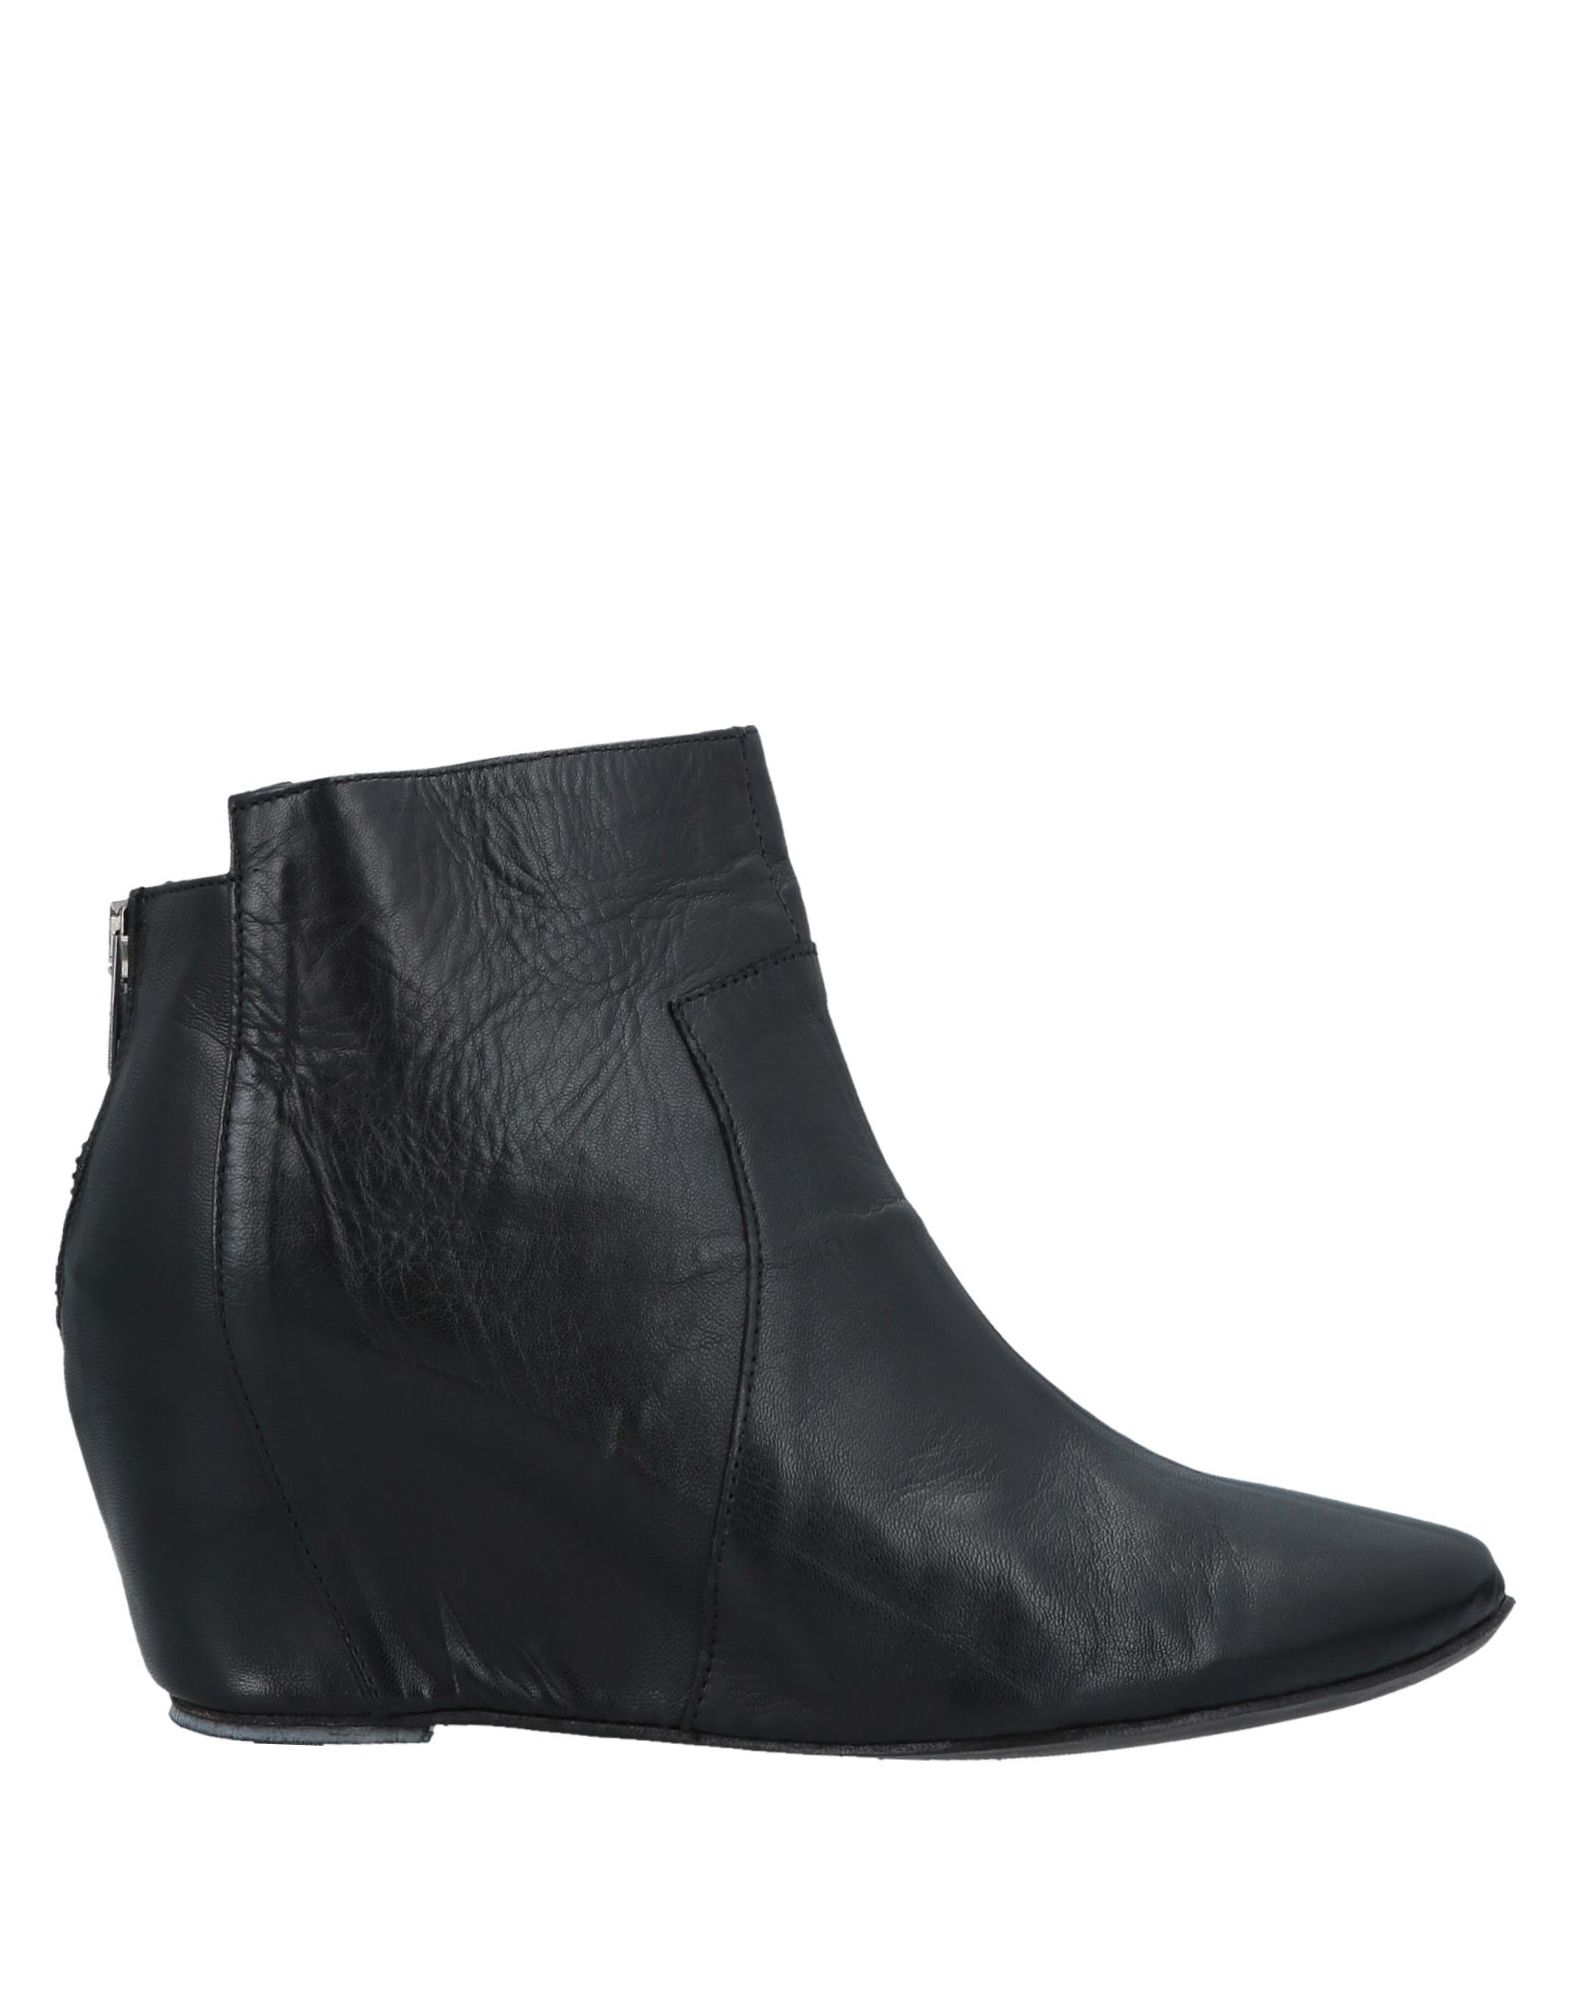 Intoxicated Ankle boot